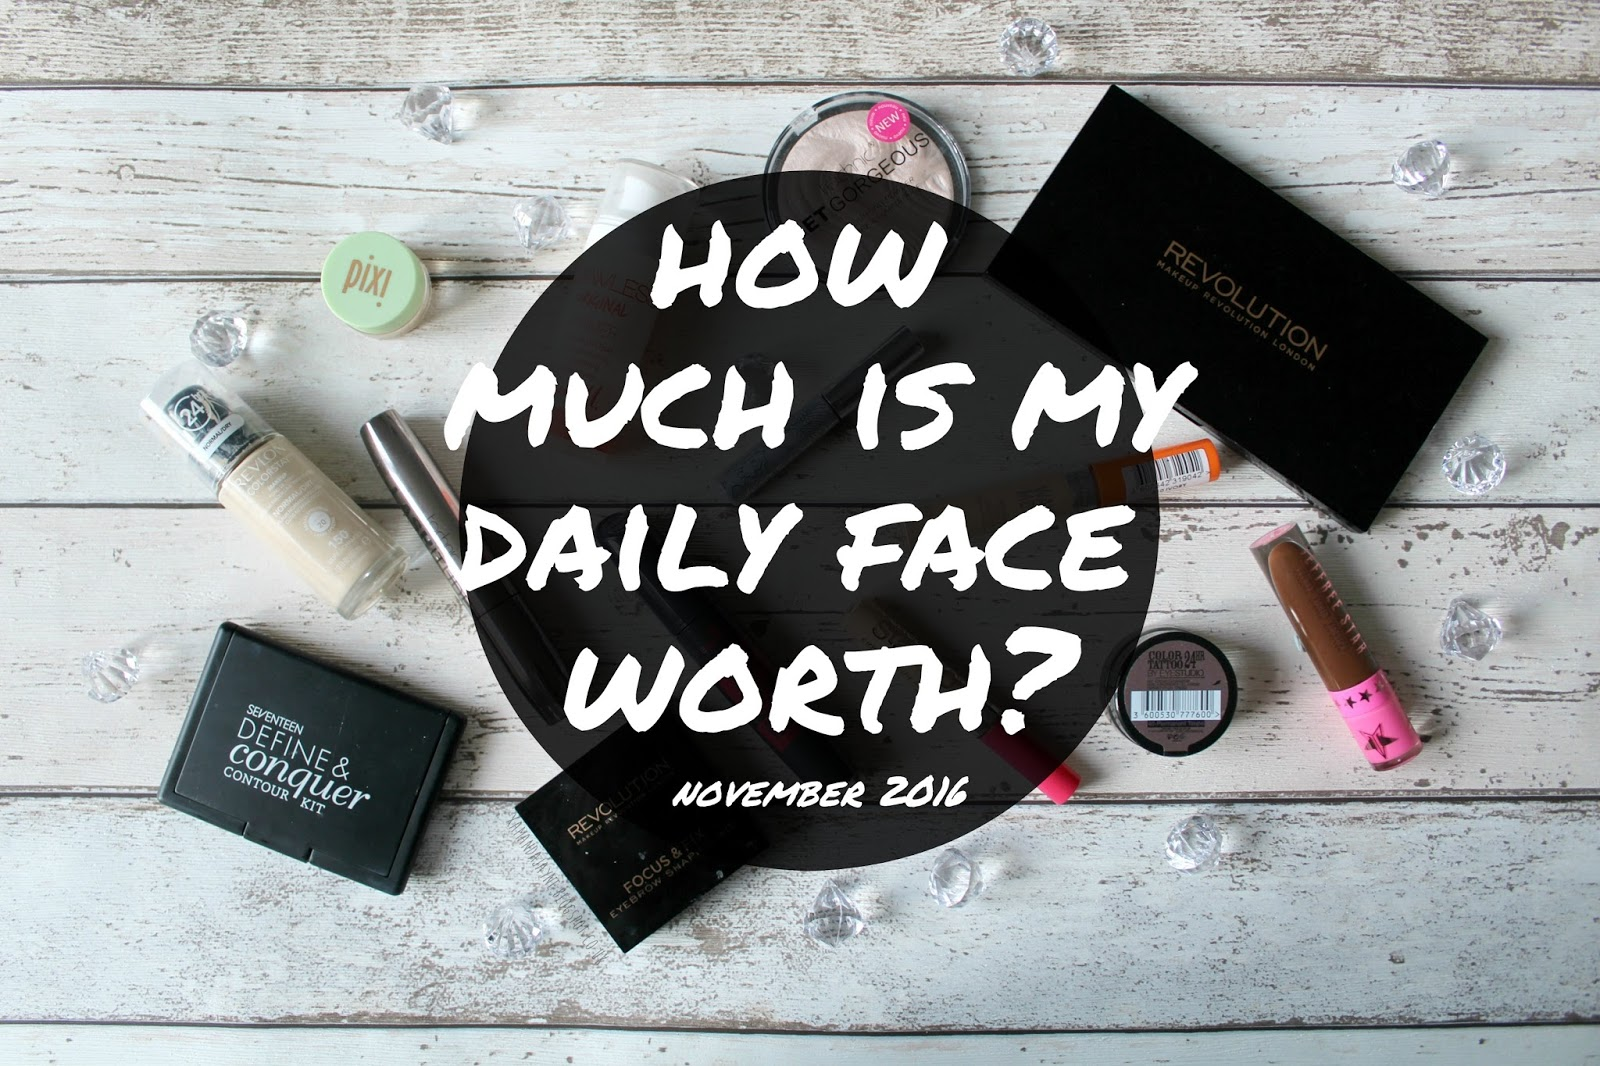 makeup of the day makeup of the month daily face cost how much is my everyday face worth